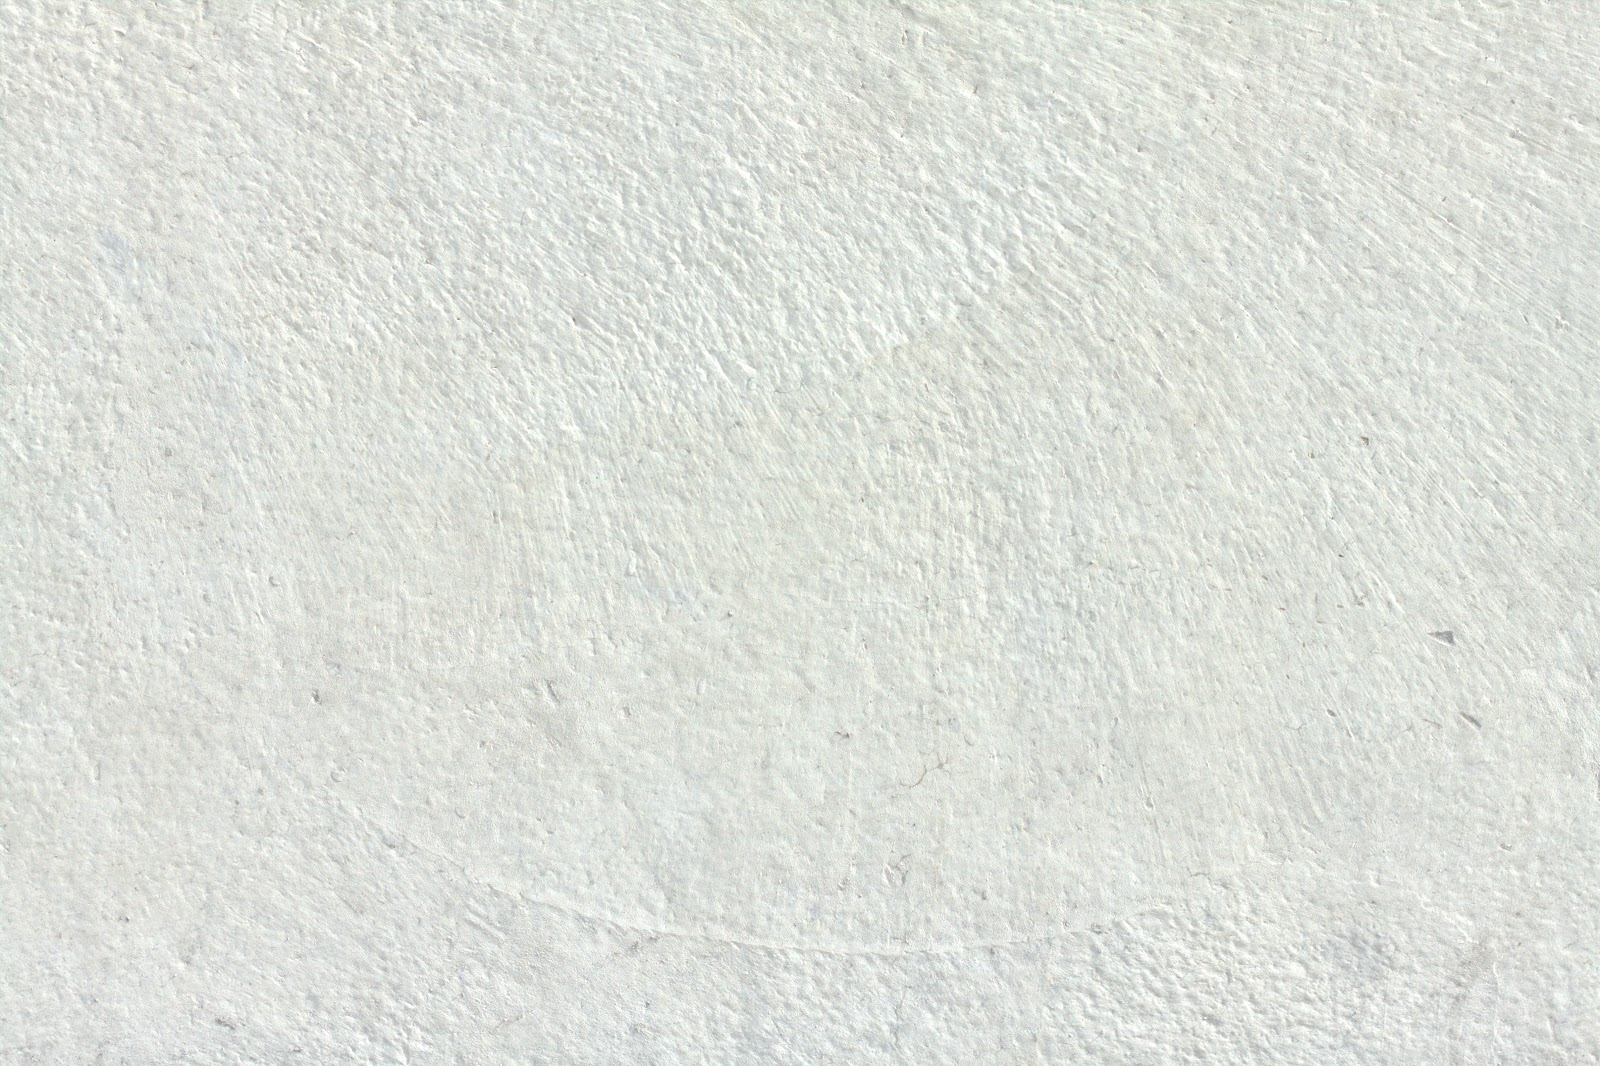 High Resolution Seamless Textures Wall Stucco White